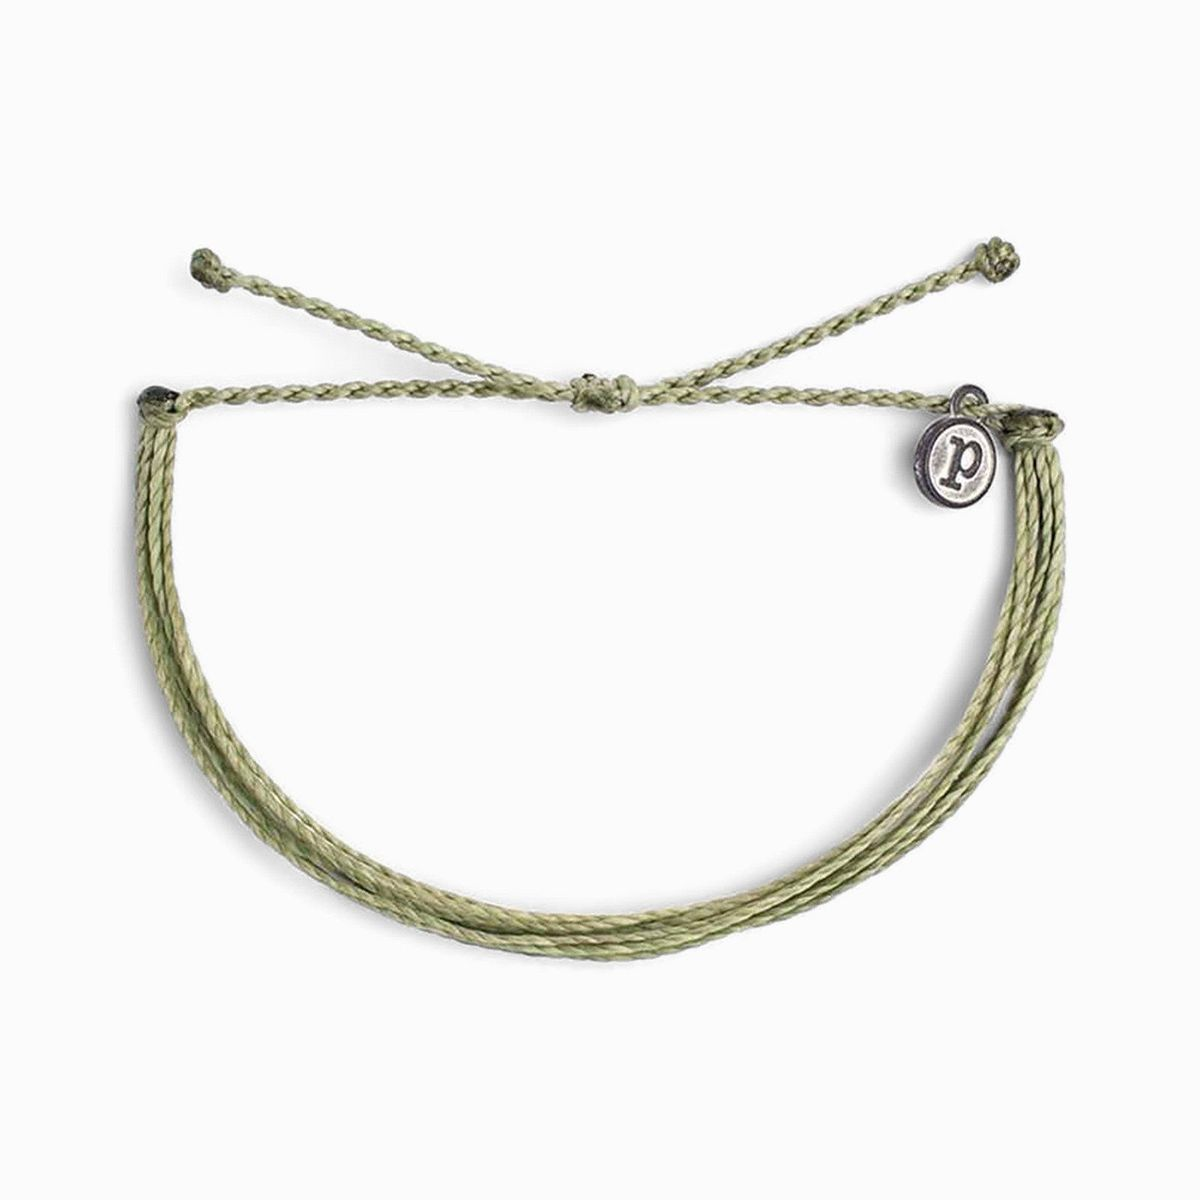 Solid Sage Green Original Bracelet by Pura Vida